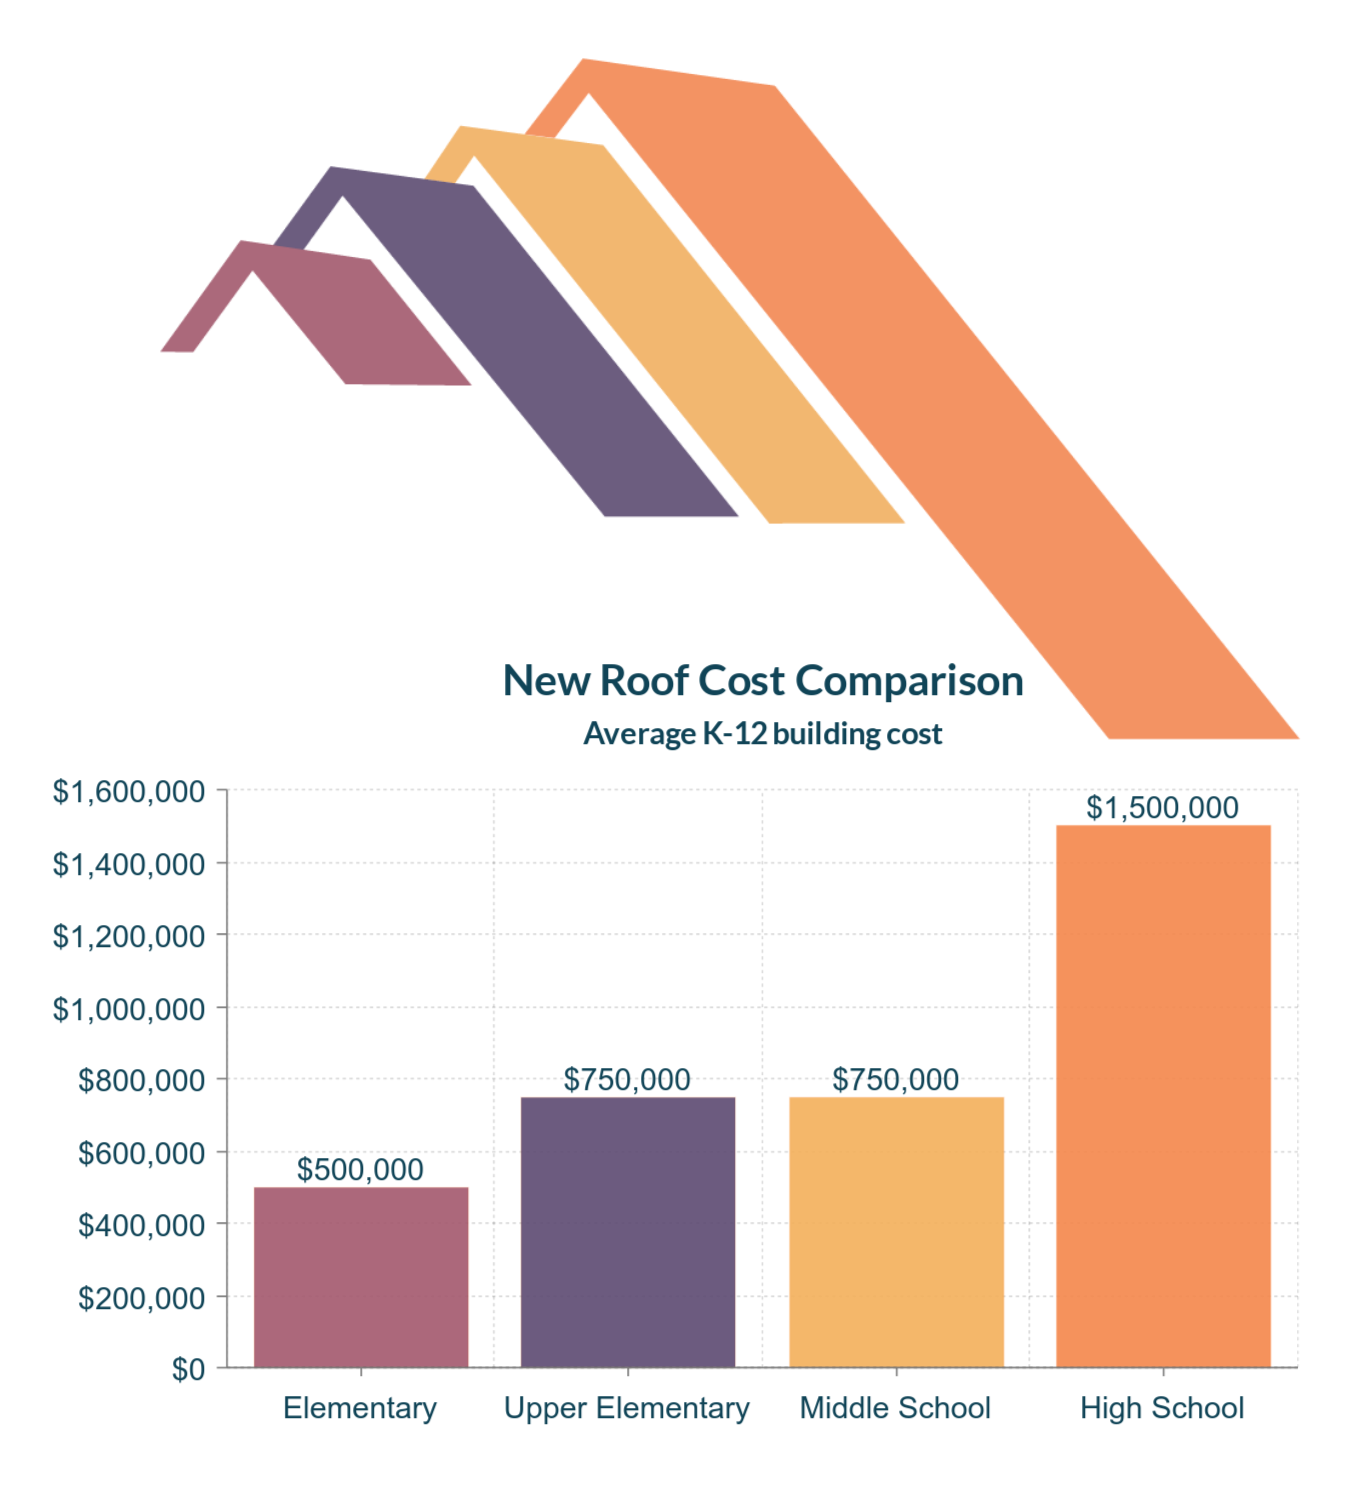 Average K-12 Roofing Cost